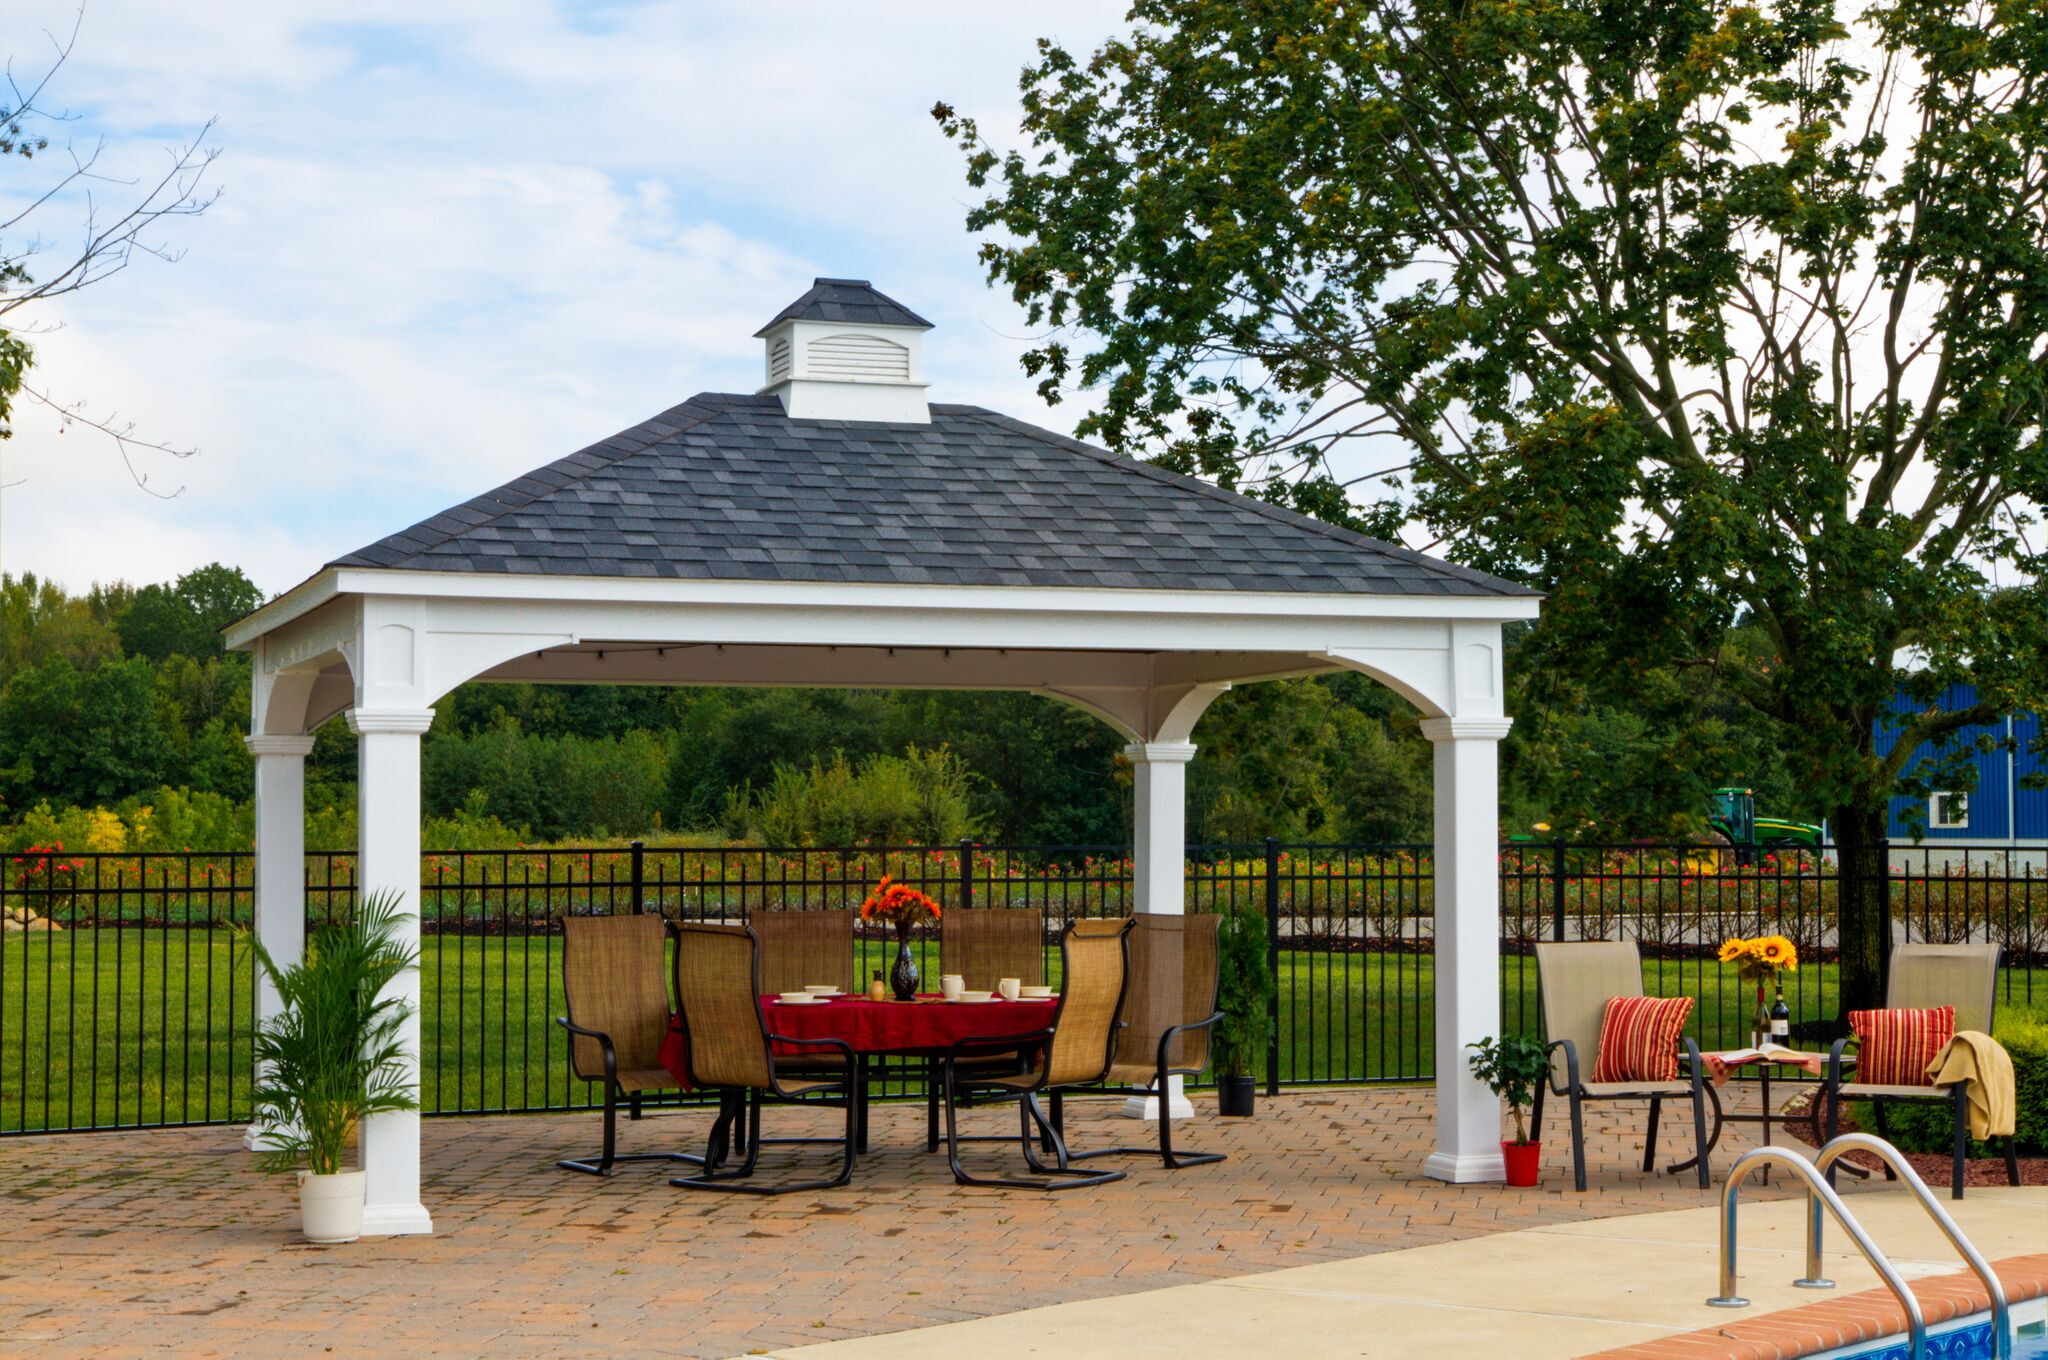 12x16vinylpavilion.html-442-12'x16' Traditional White Vinyl Pavilion - 8x8 Posts - Cupola - Asphalt Shingles  (4)_preview.jpeg